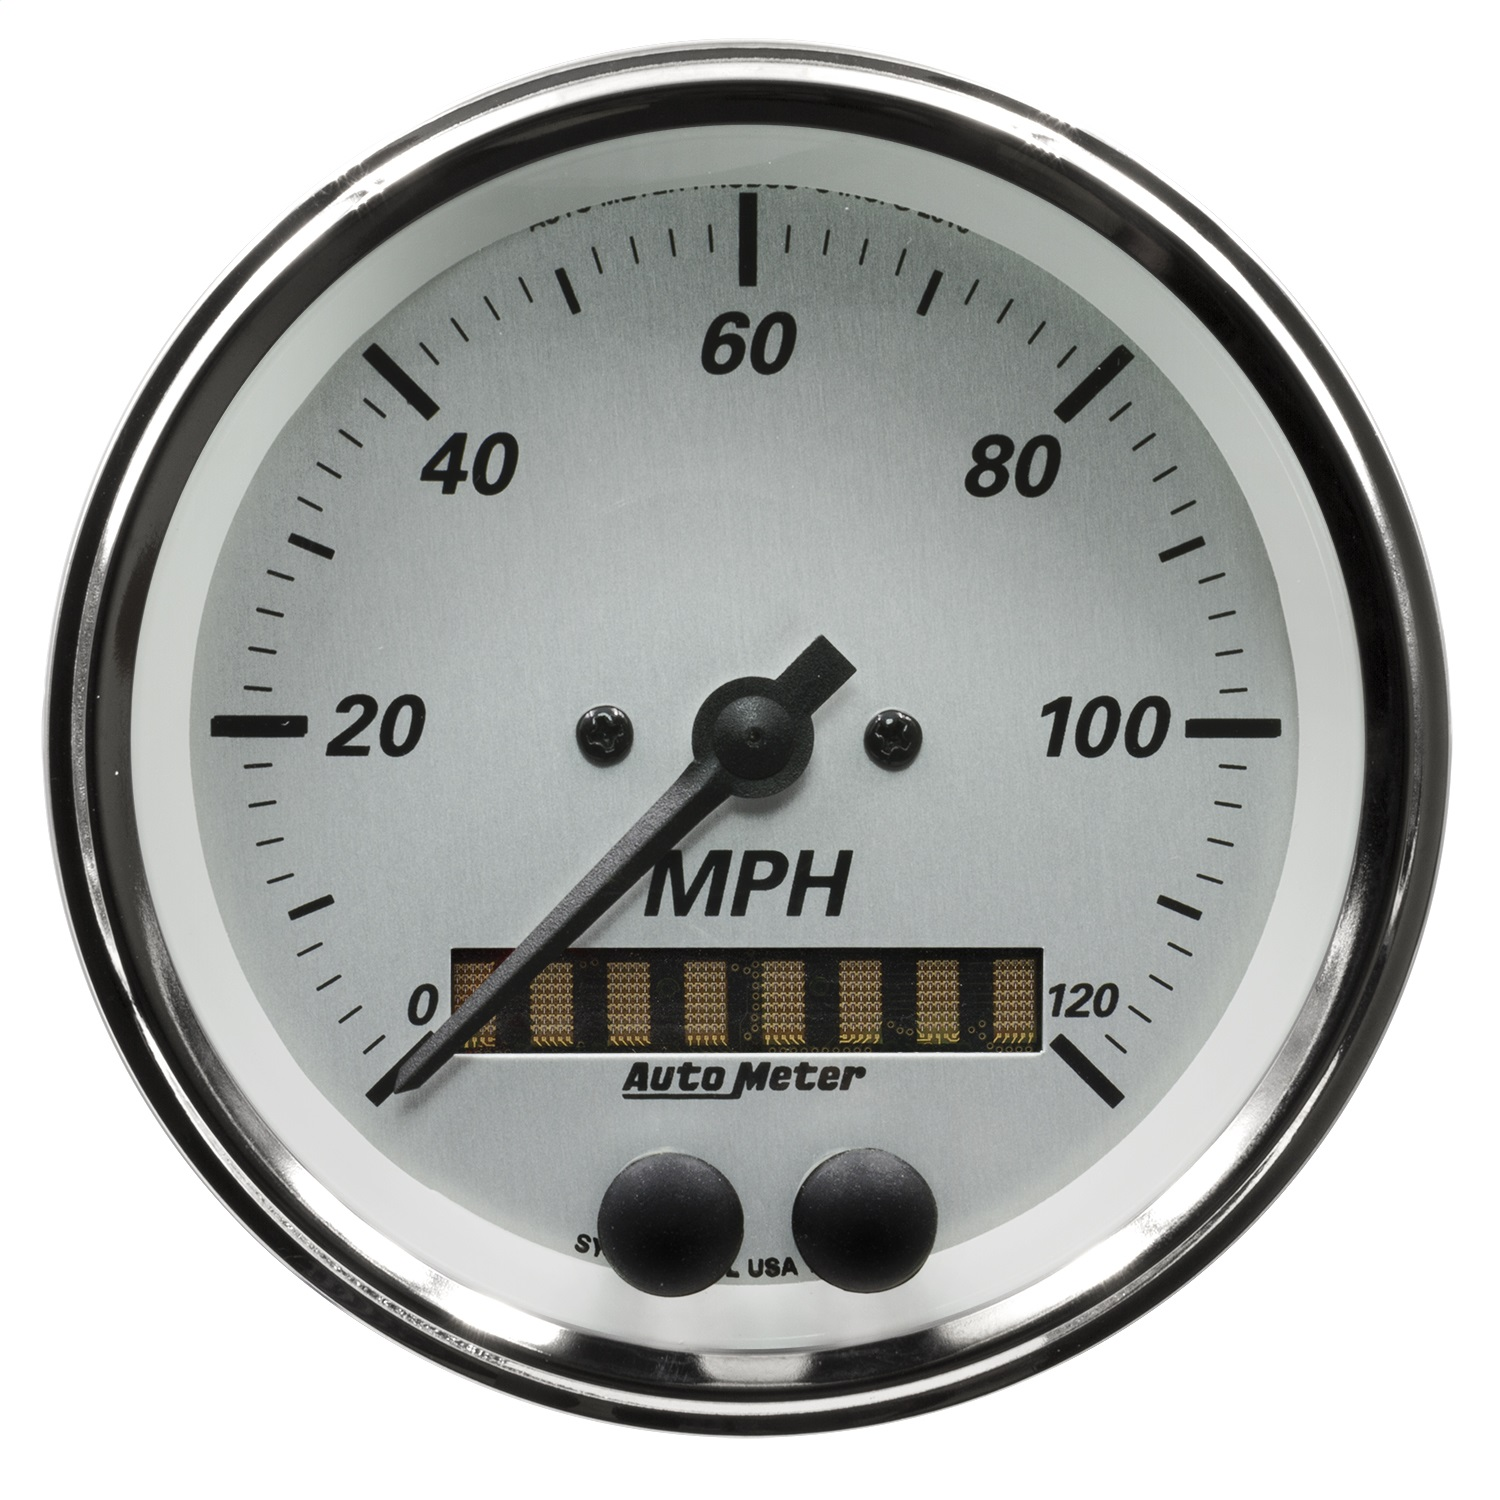 Details about AutoMeter 1949 American Platinum GPS Speedometer